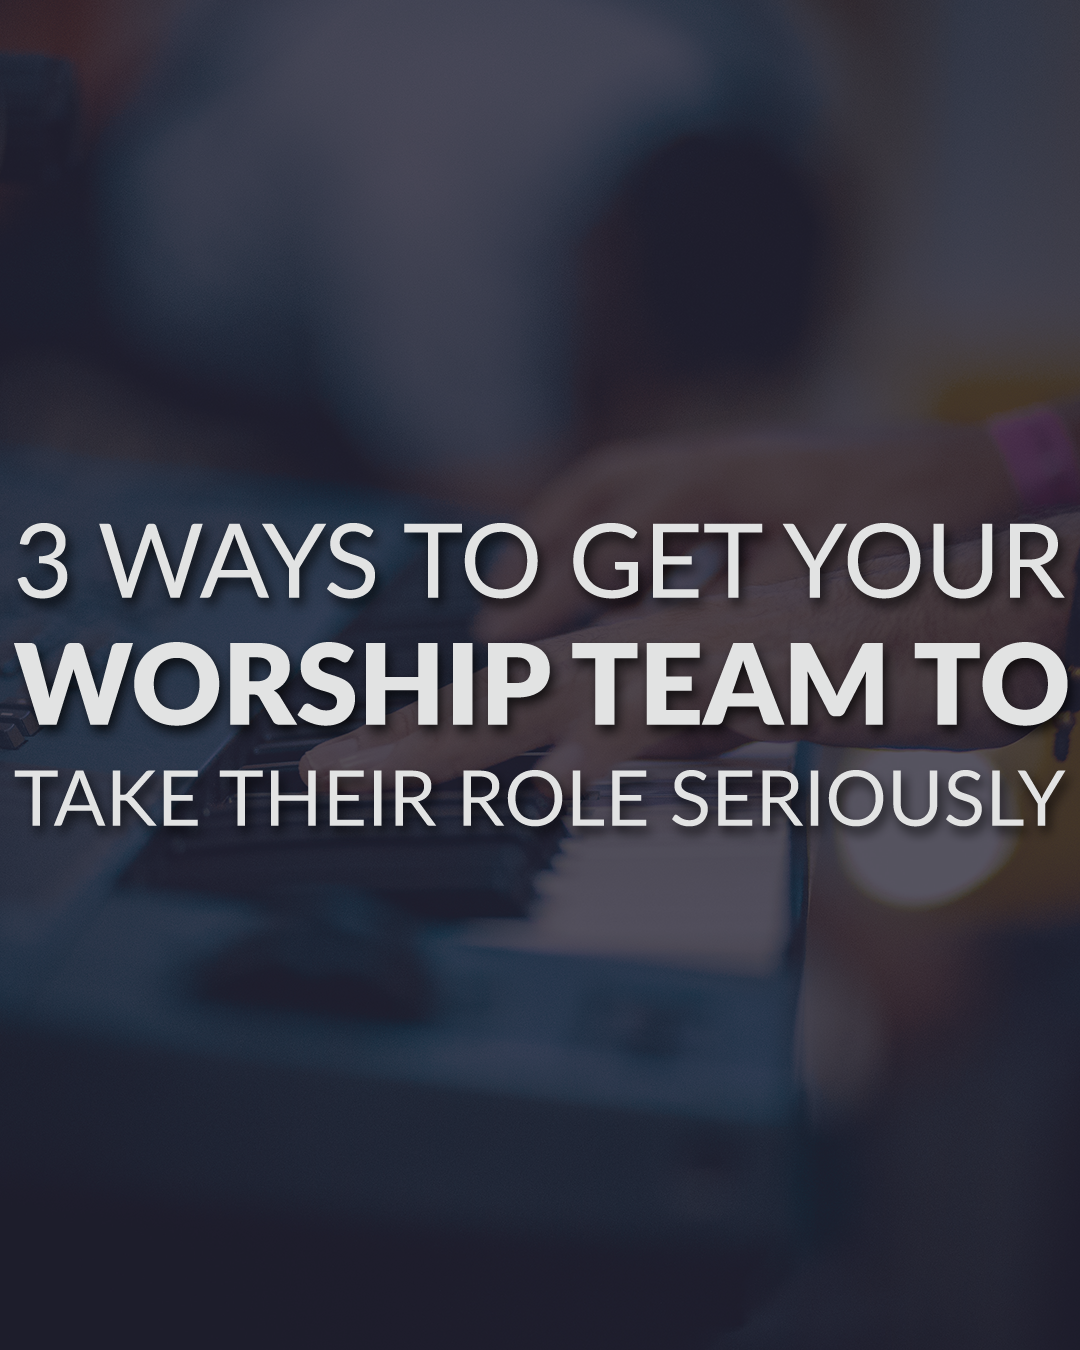 3 Ways To Get Your Worship Team To Take Their Role Seriously